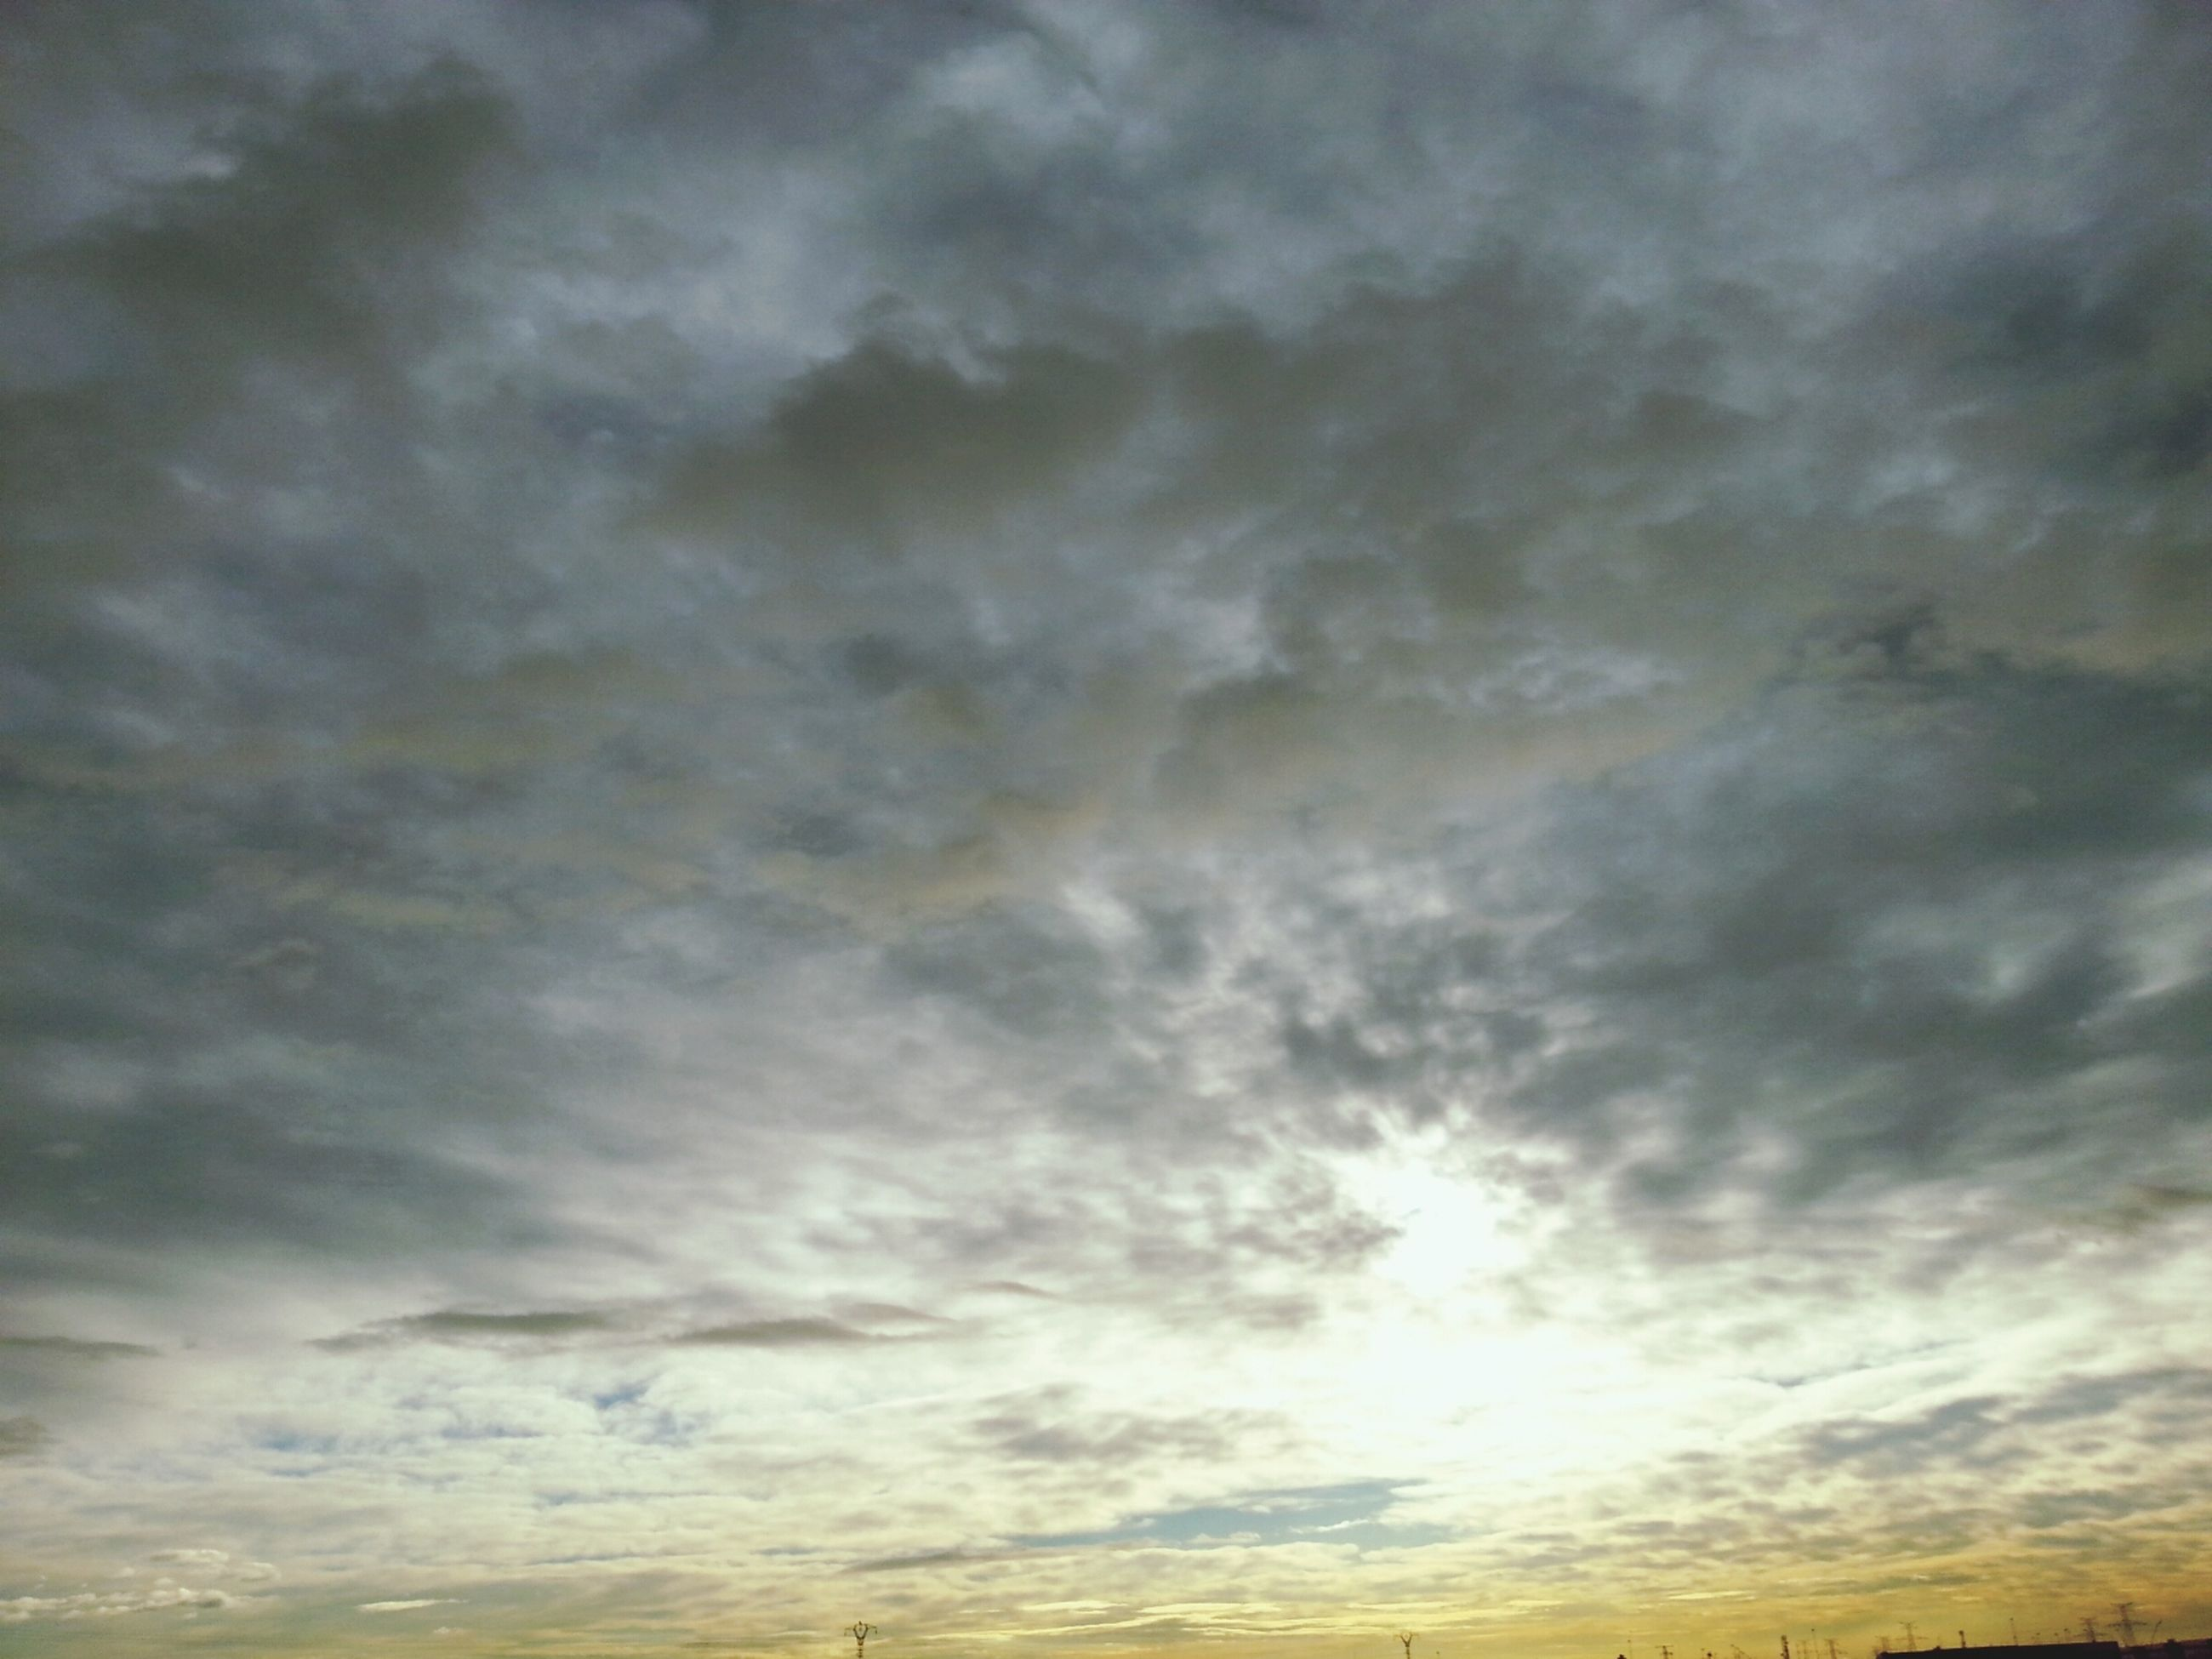 sky, cloud - sky, cloudy, scenics, beauty in nature, tranquility, tranquil scene, low angle view, nature, sunset, cloudscape, weather, overcast, idyllic, cloud, sky only, backgrounds, dramatic sky, outdoors, no people